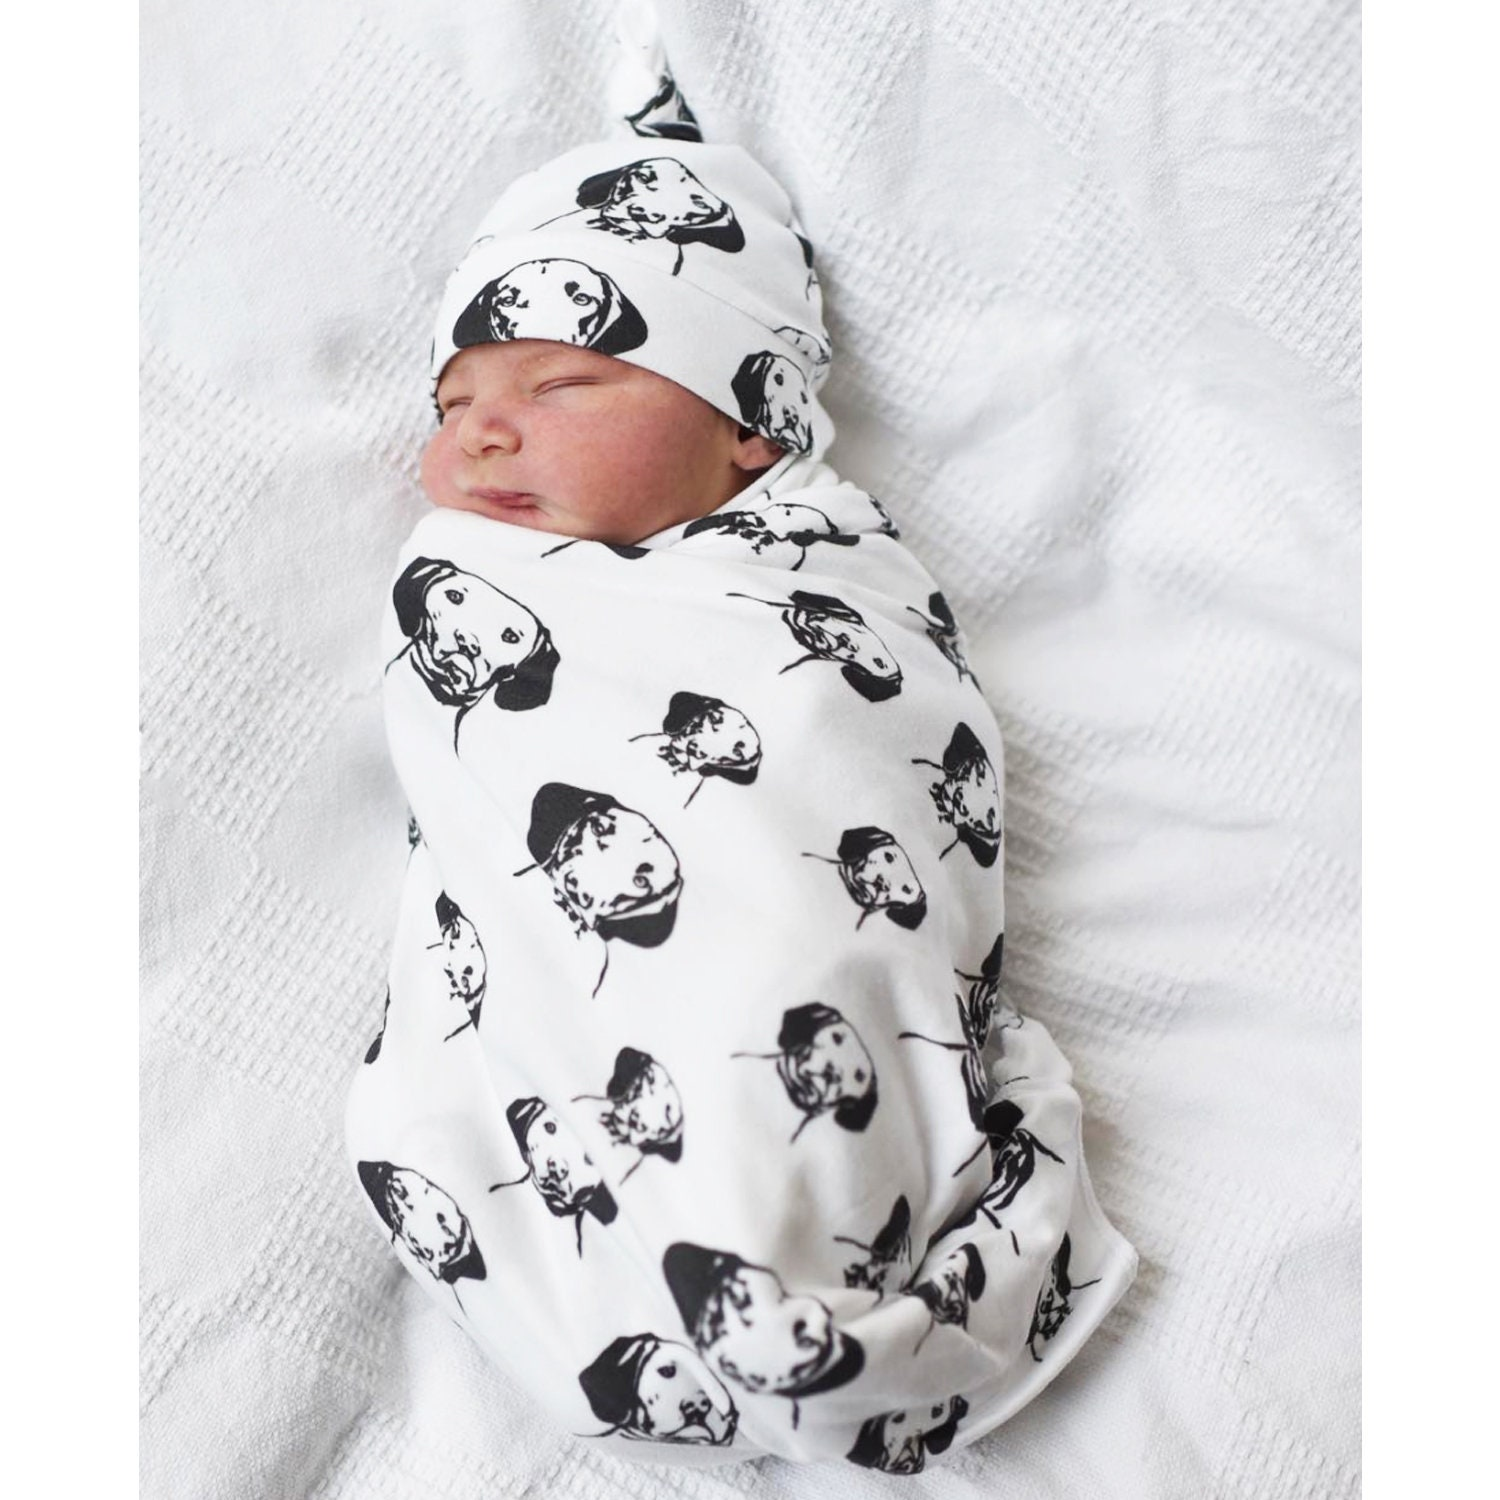 Personalized Organic New Baby Swaddle Blanket Leggings Hat Mittens Set,  Personalised Dog Print Baby Gift, Organic Baby Coming Home Outfit